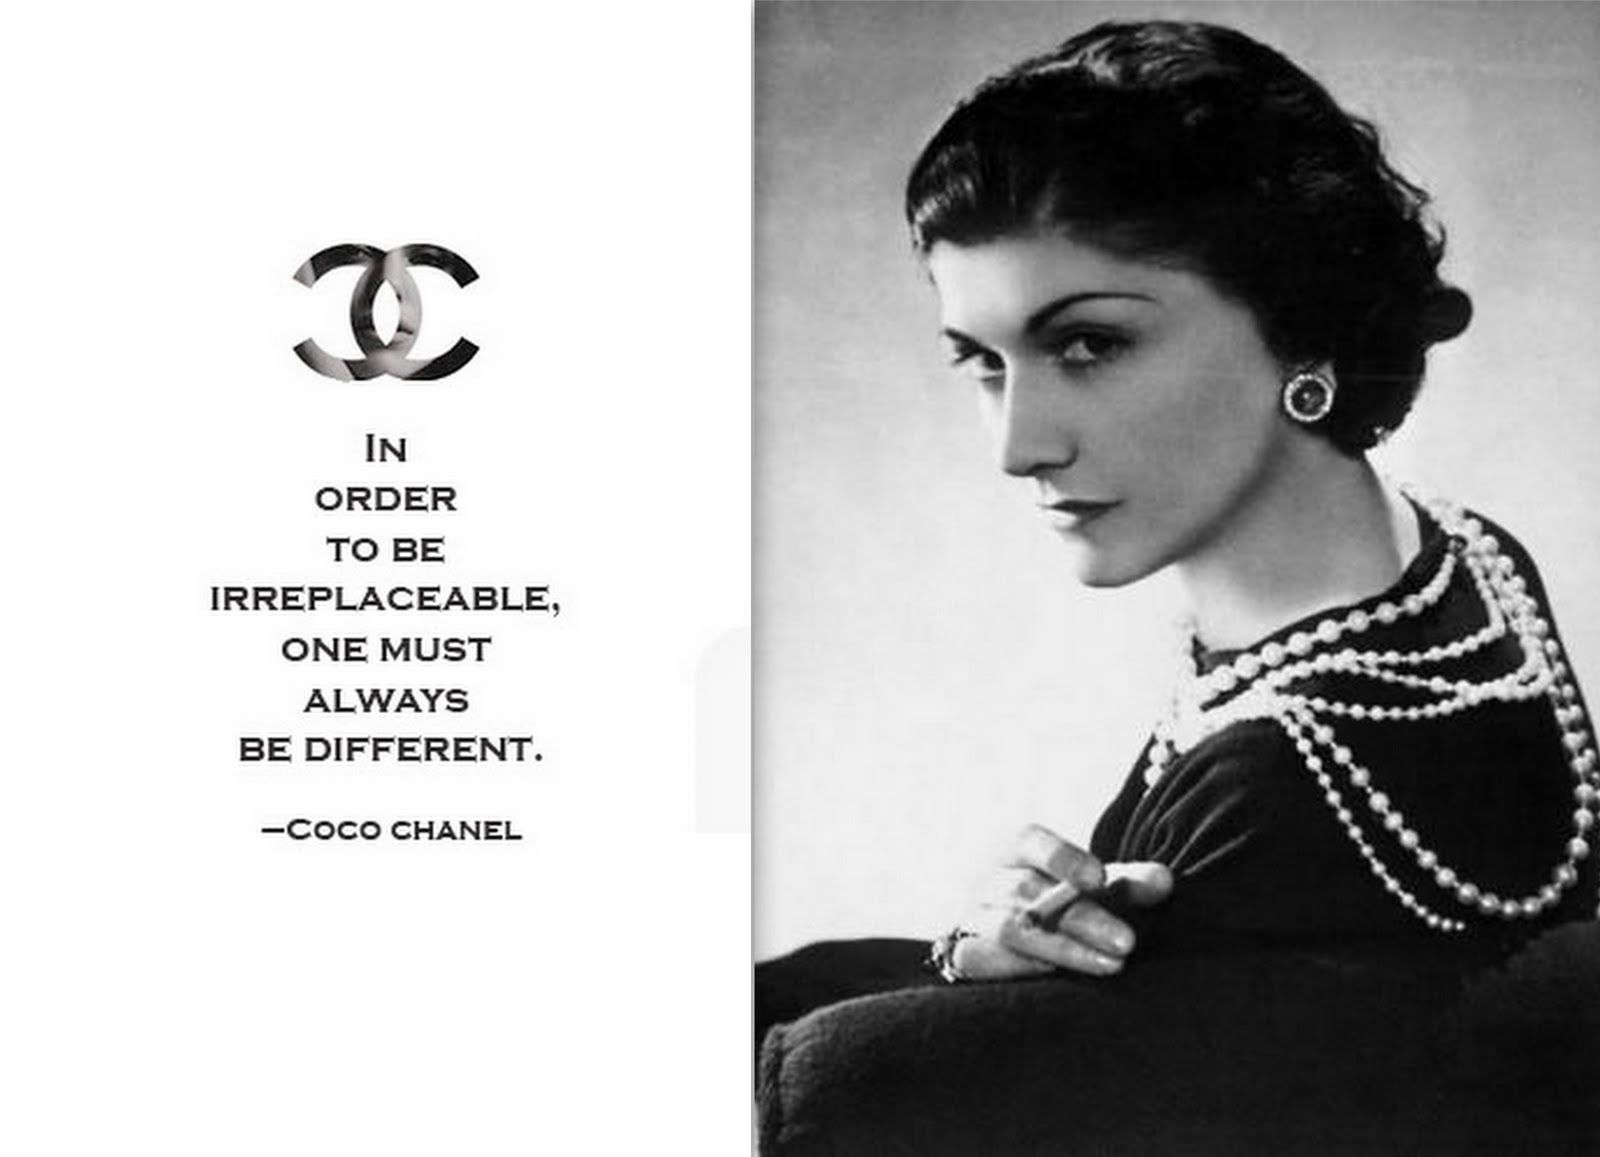 Pin By Sarah Babich On Strong Women Life Quotes Coco Chanel Quotes Chanel Quotes Fashion Designers Famous